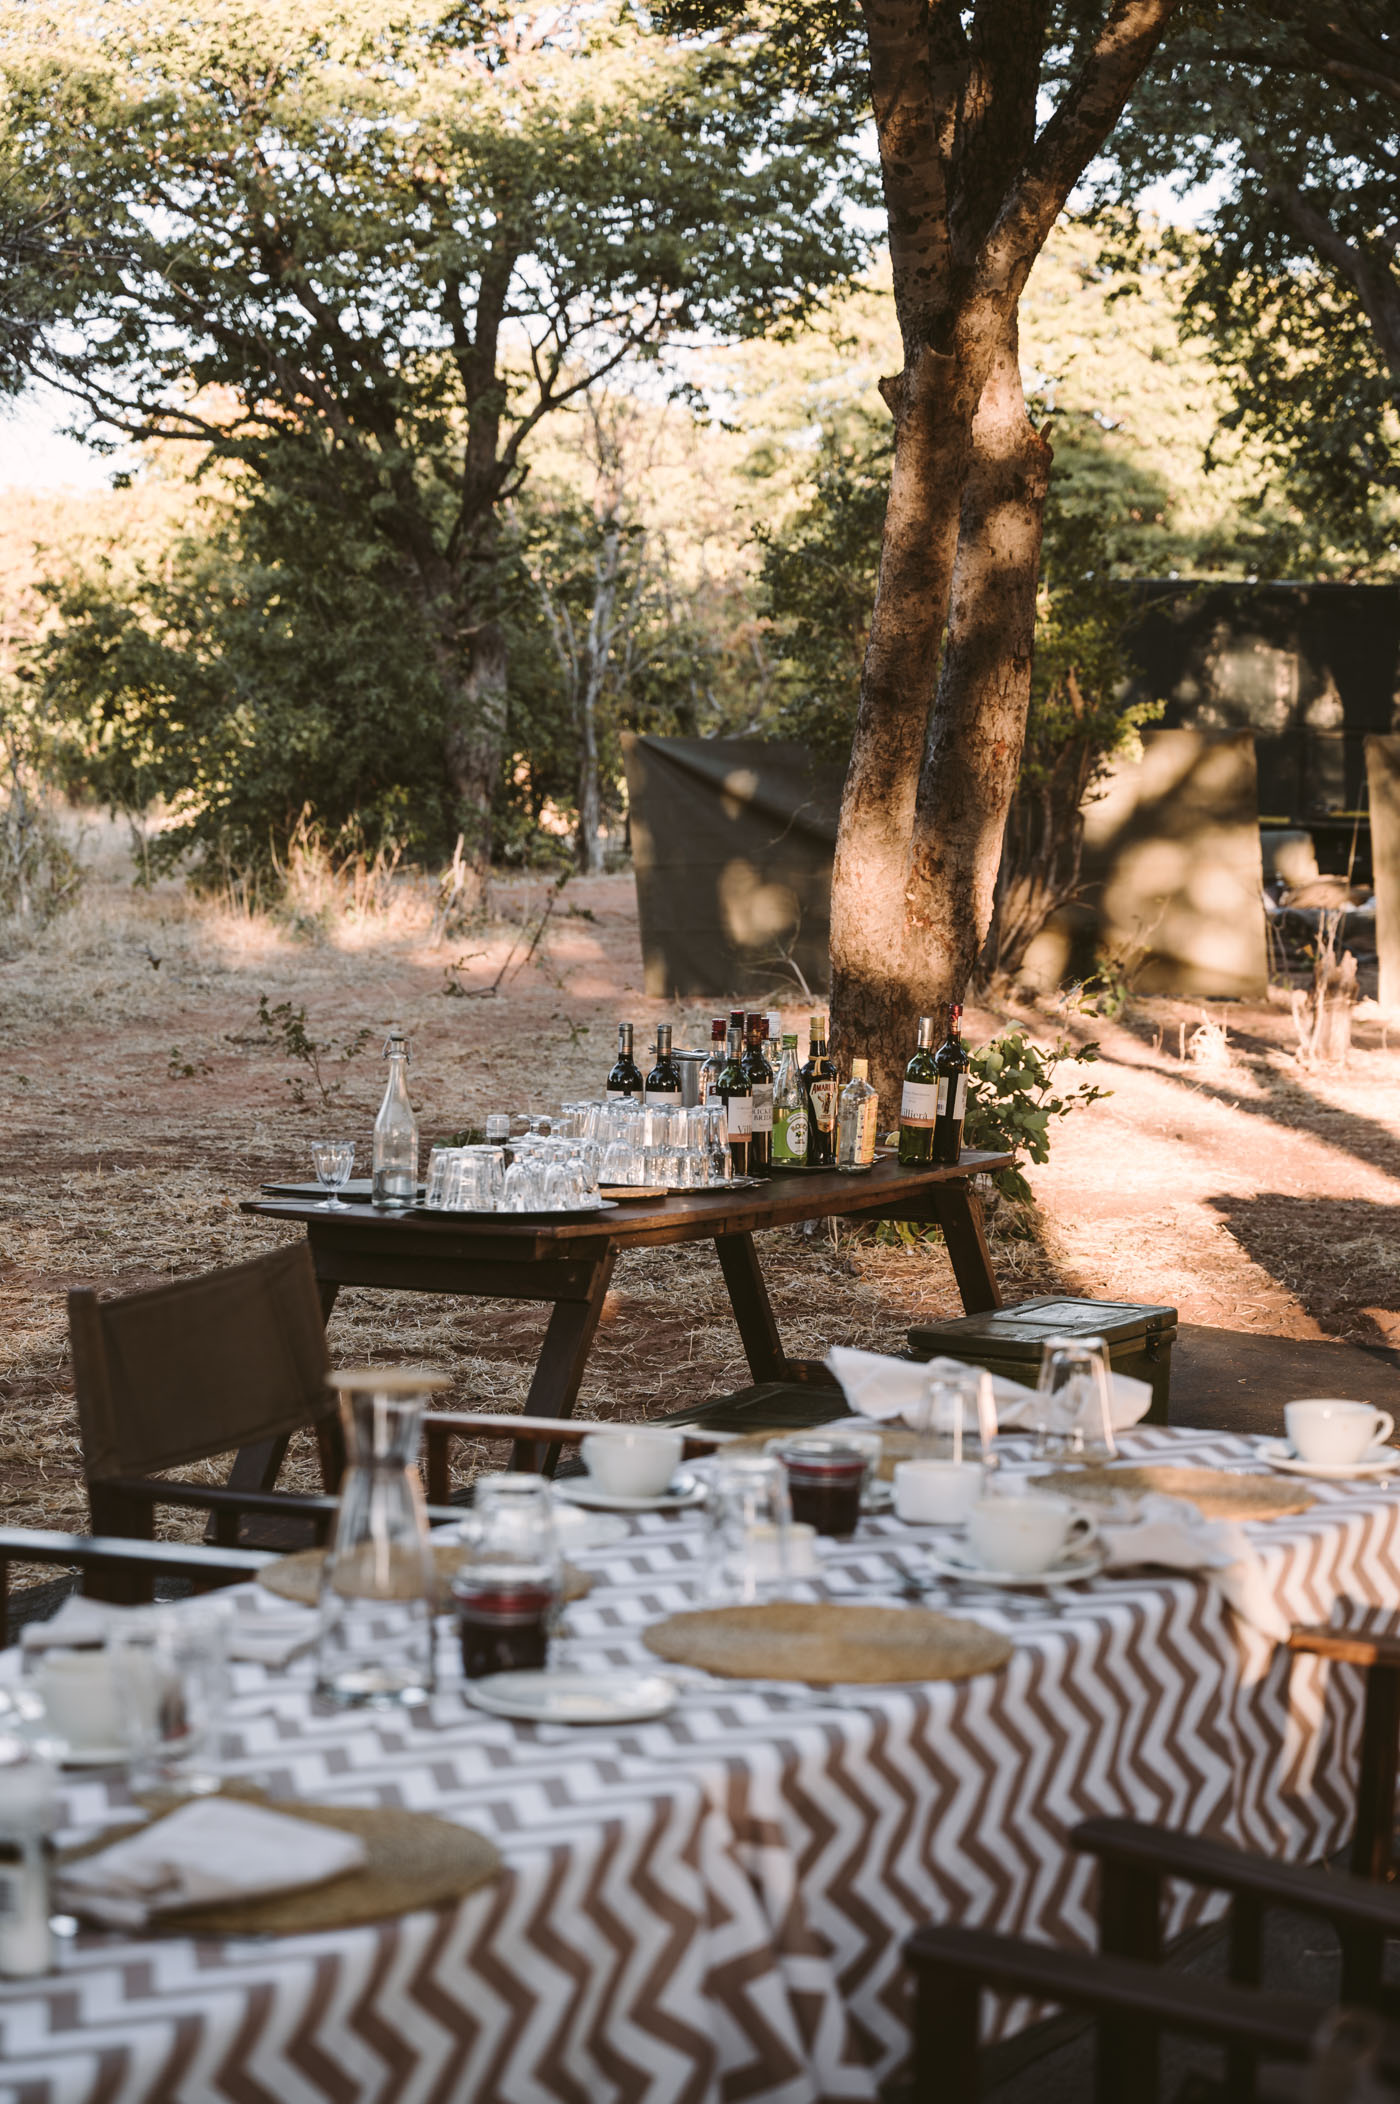 andBeyond Chobe under Canvas dinner setting